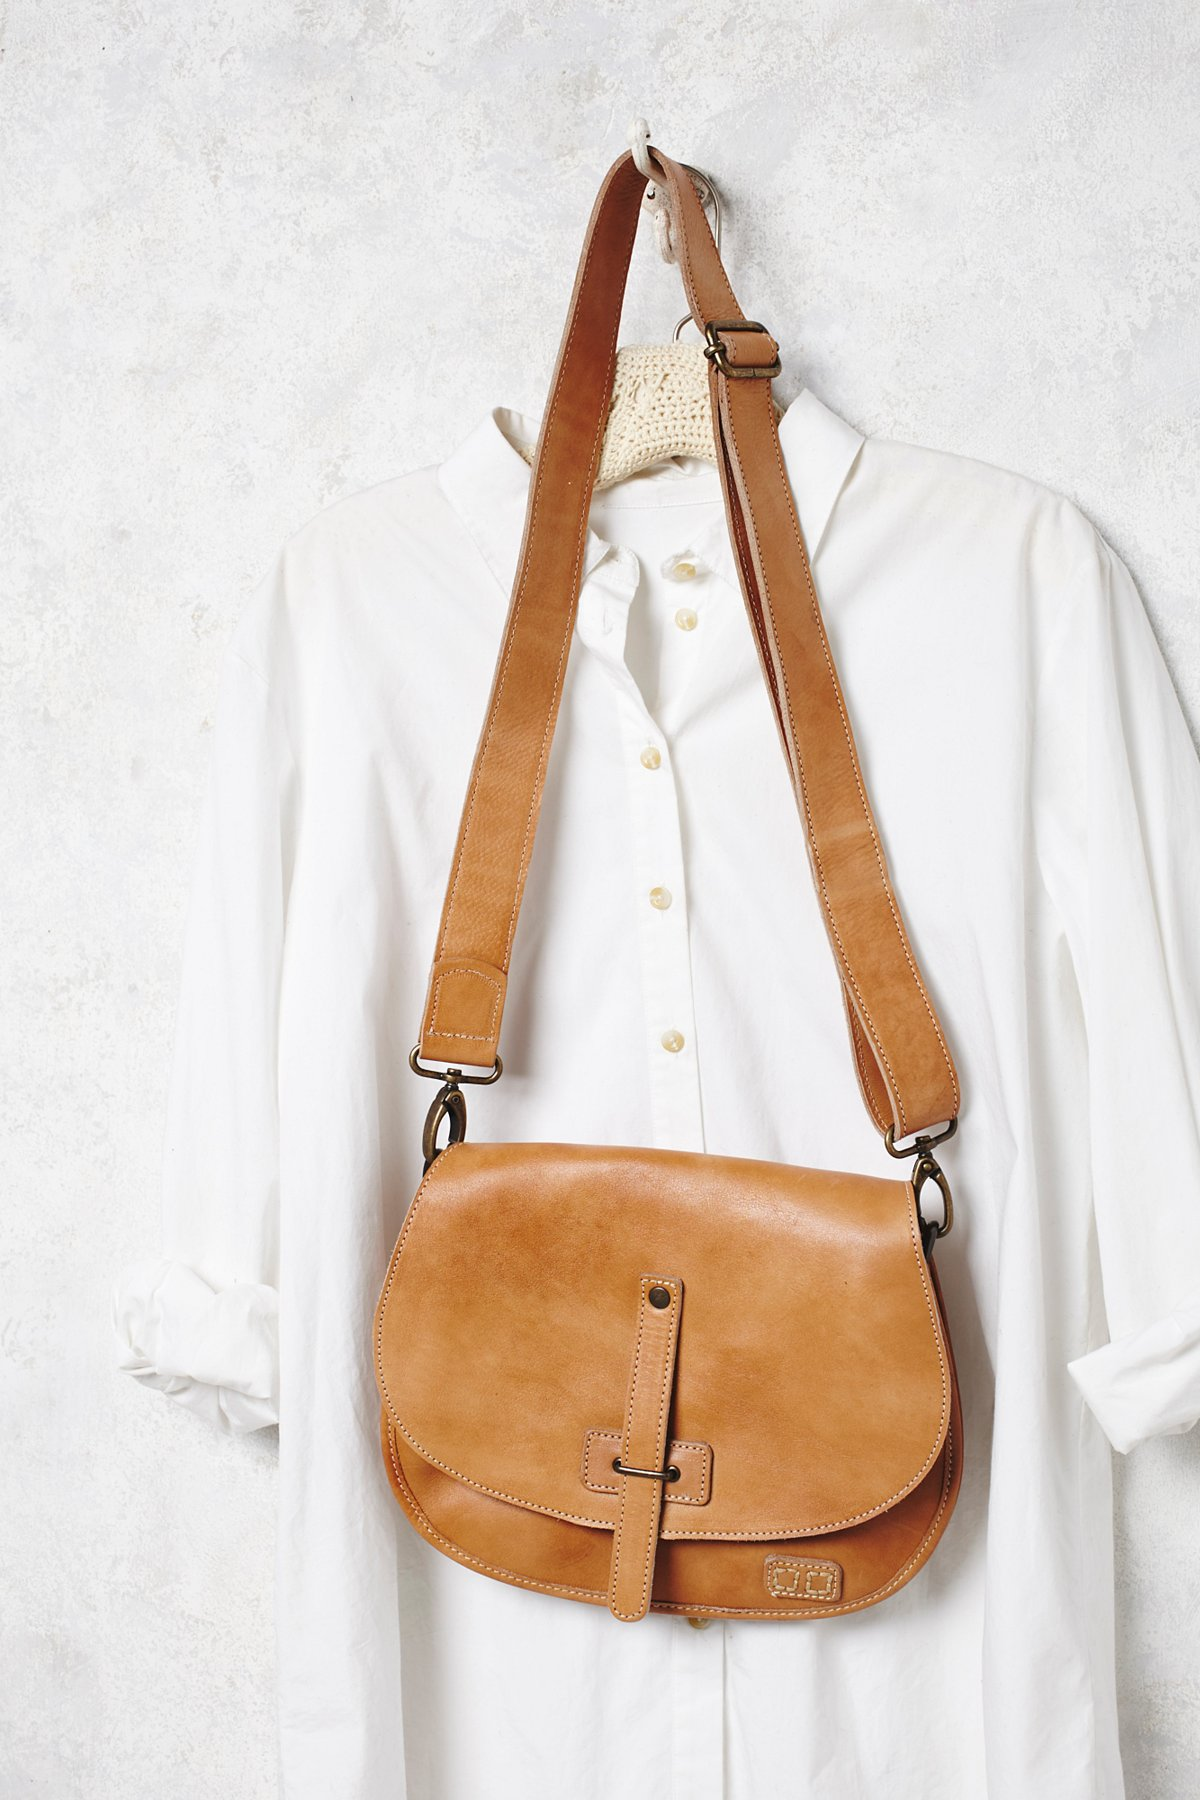 Going West Leather Saddle Bag